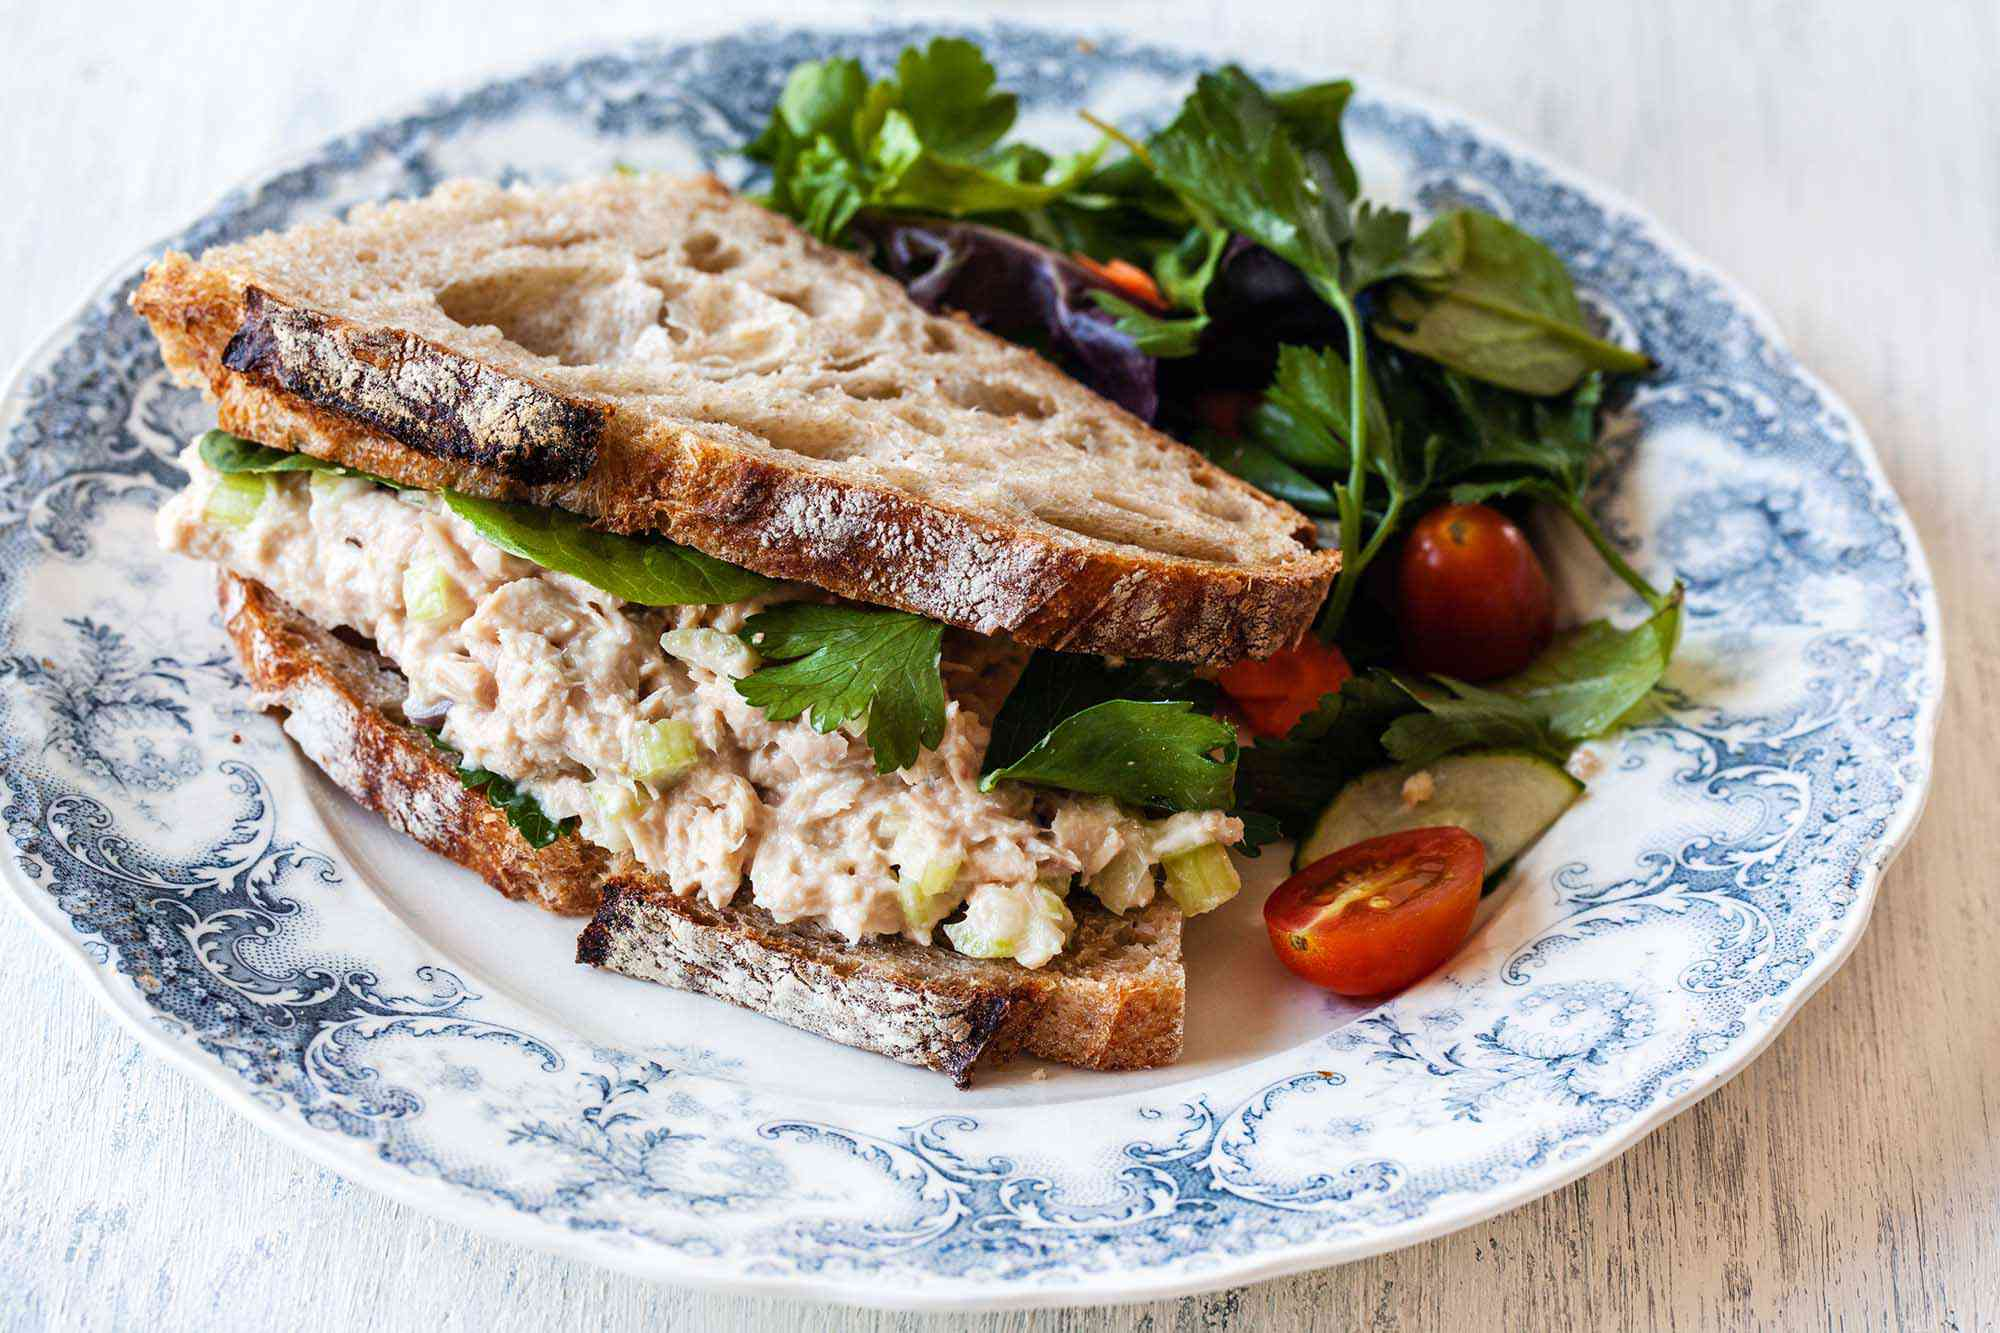 Crusty sandwich bread with the best tuna salad inside. A green salad of lettuce and tomato halves is to the left on the china.